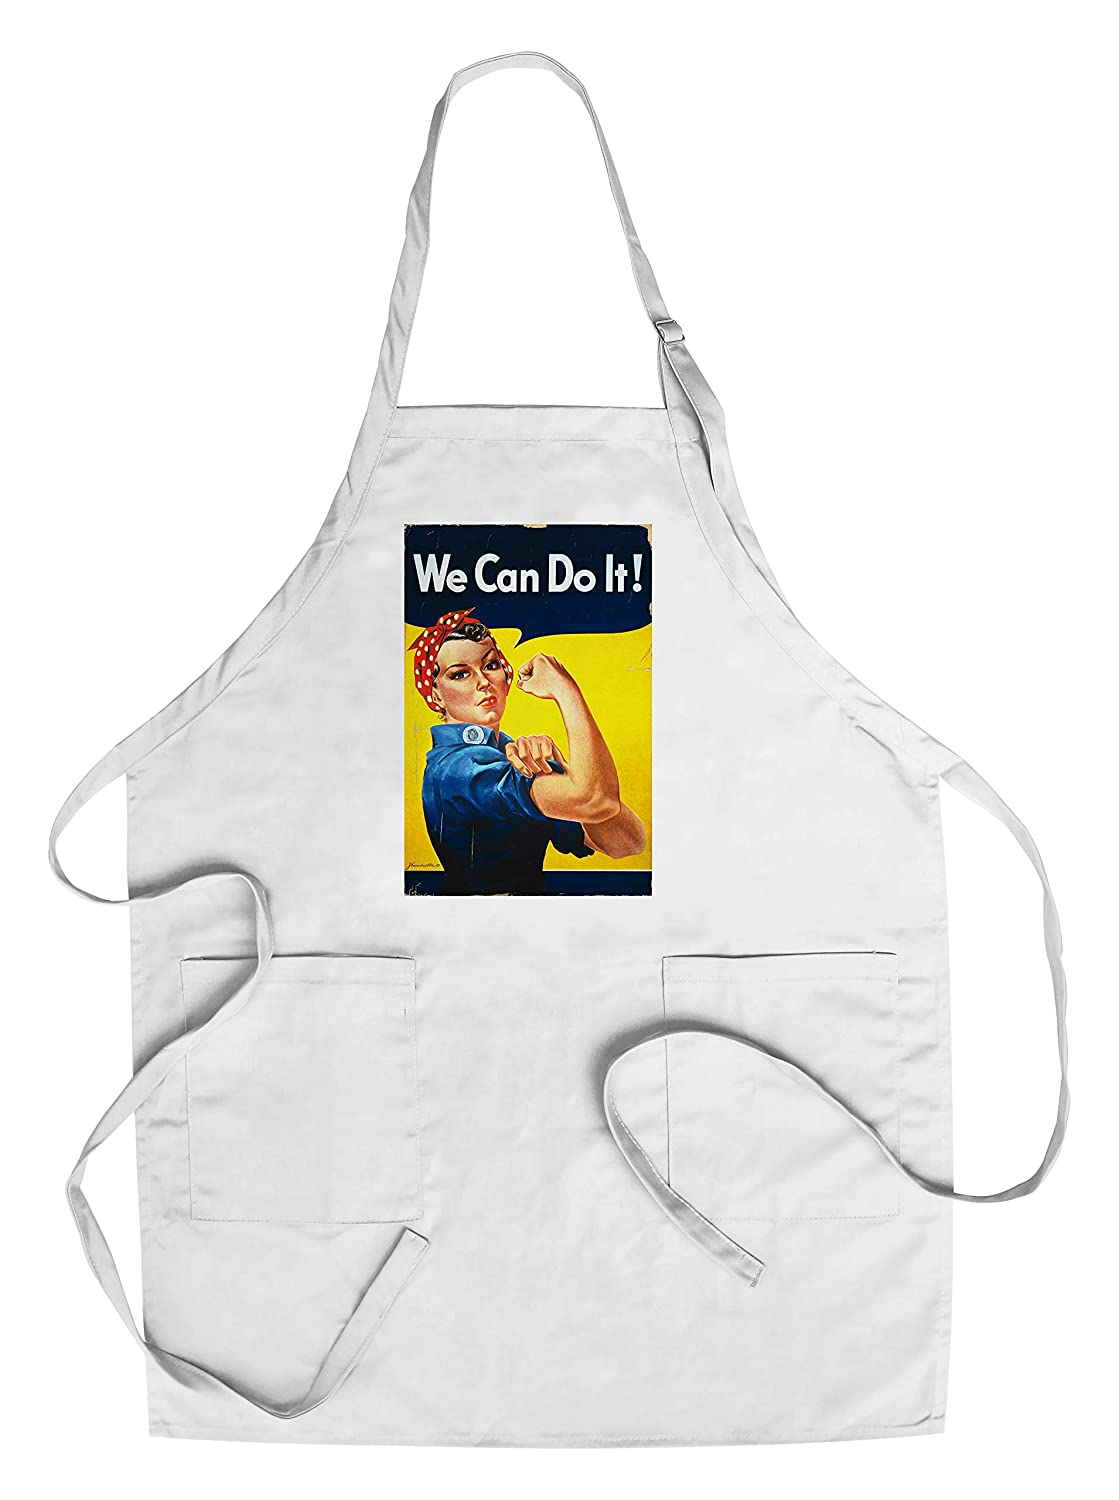 【70%OFF】 (Canvas Tote Apron Bag) - Rosie Chef's the Riveter - (Canvas We Can Do It - Poster (100% Cotton Tote Bag - Reusable) B018NO93P2 Chef's Apron Chef's Apron, MATFER shop:0910e42c --- arianechie.dominiotemporario.com